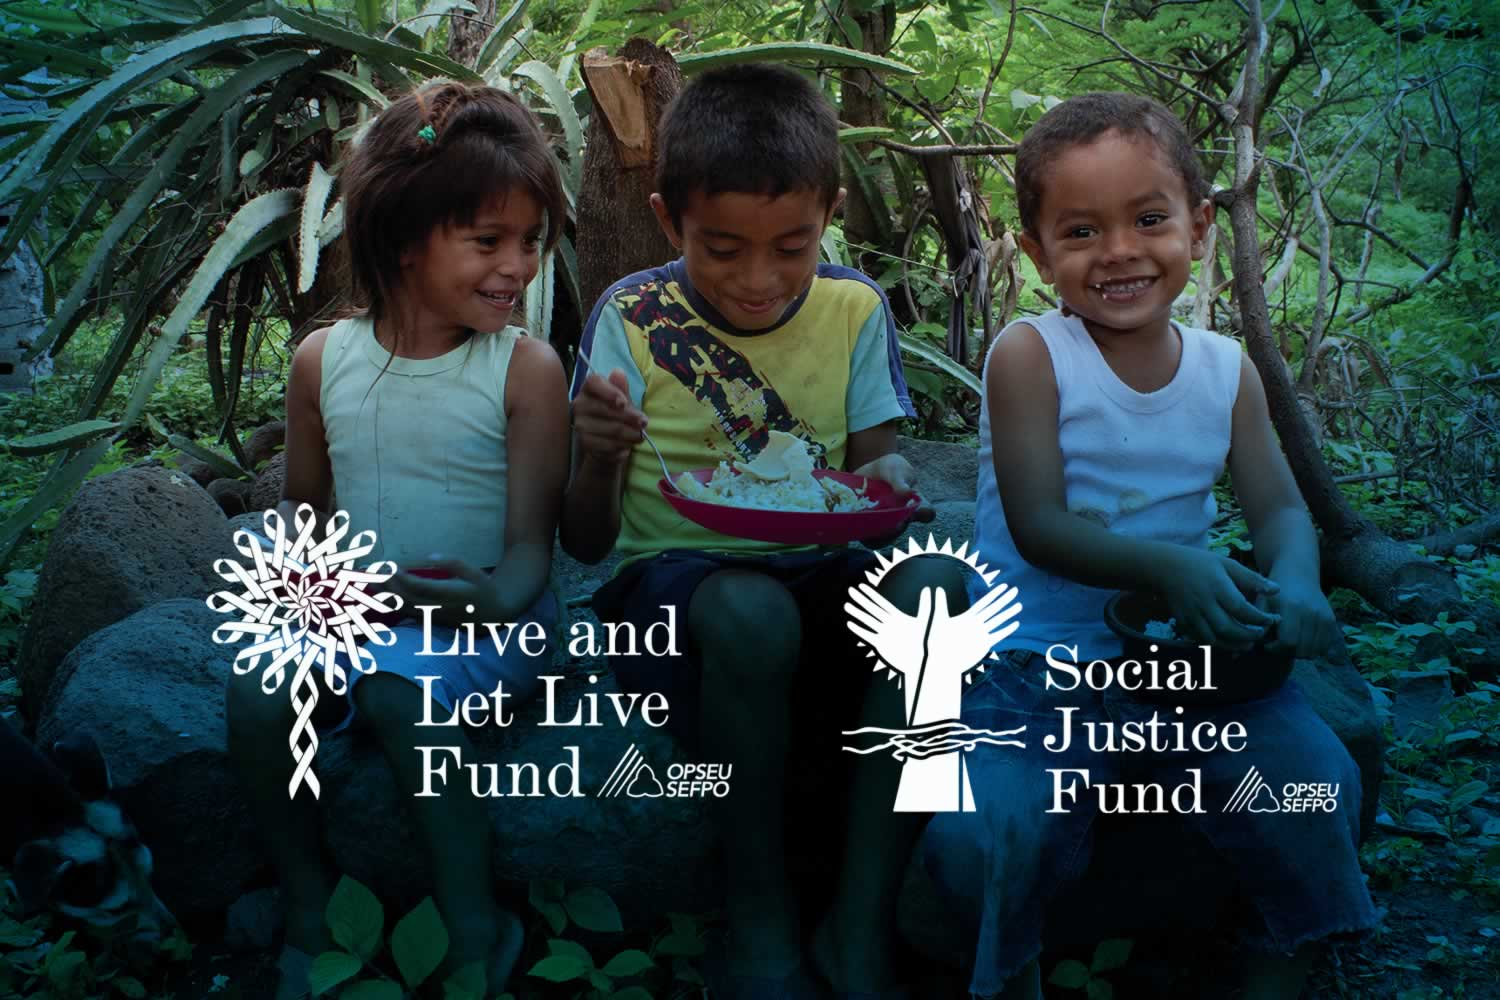 OPSEU Live and Let Live Fund, Social Justice Fund